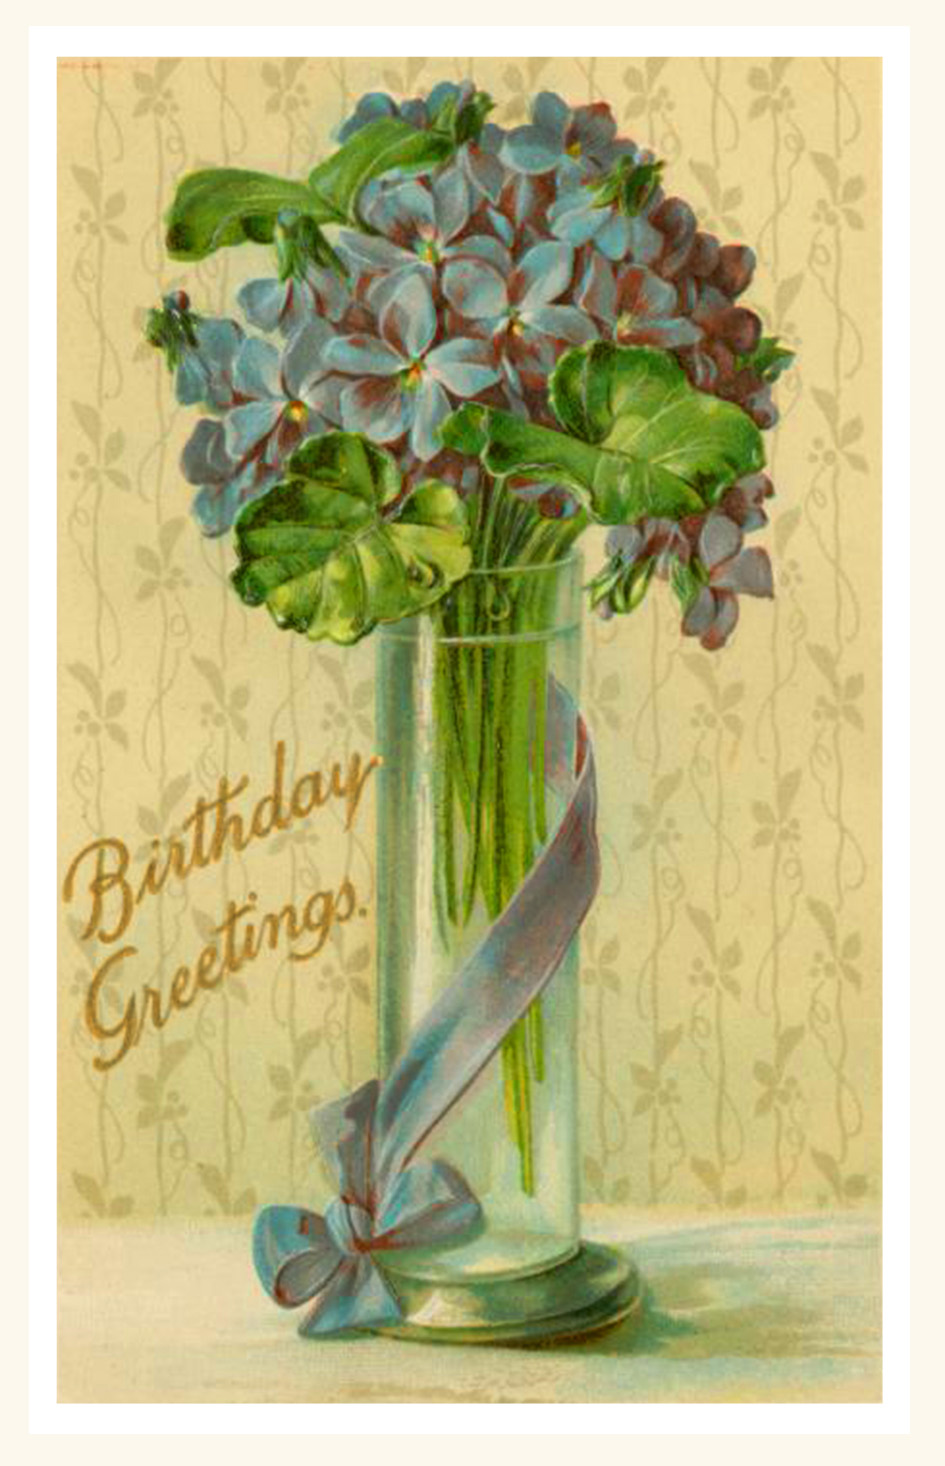 birthday_greeting-card-flowers-2